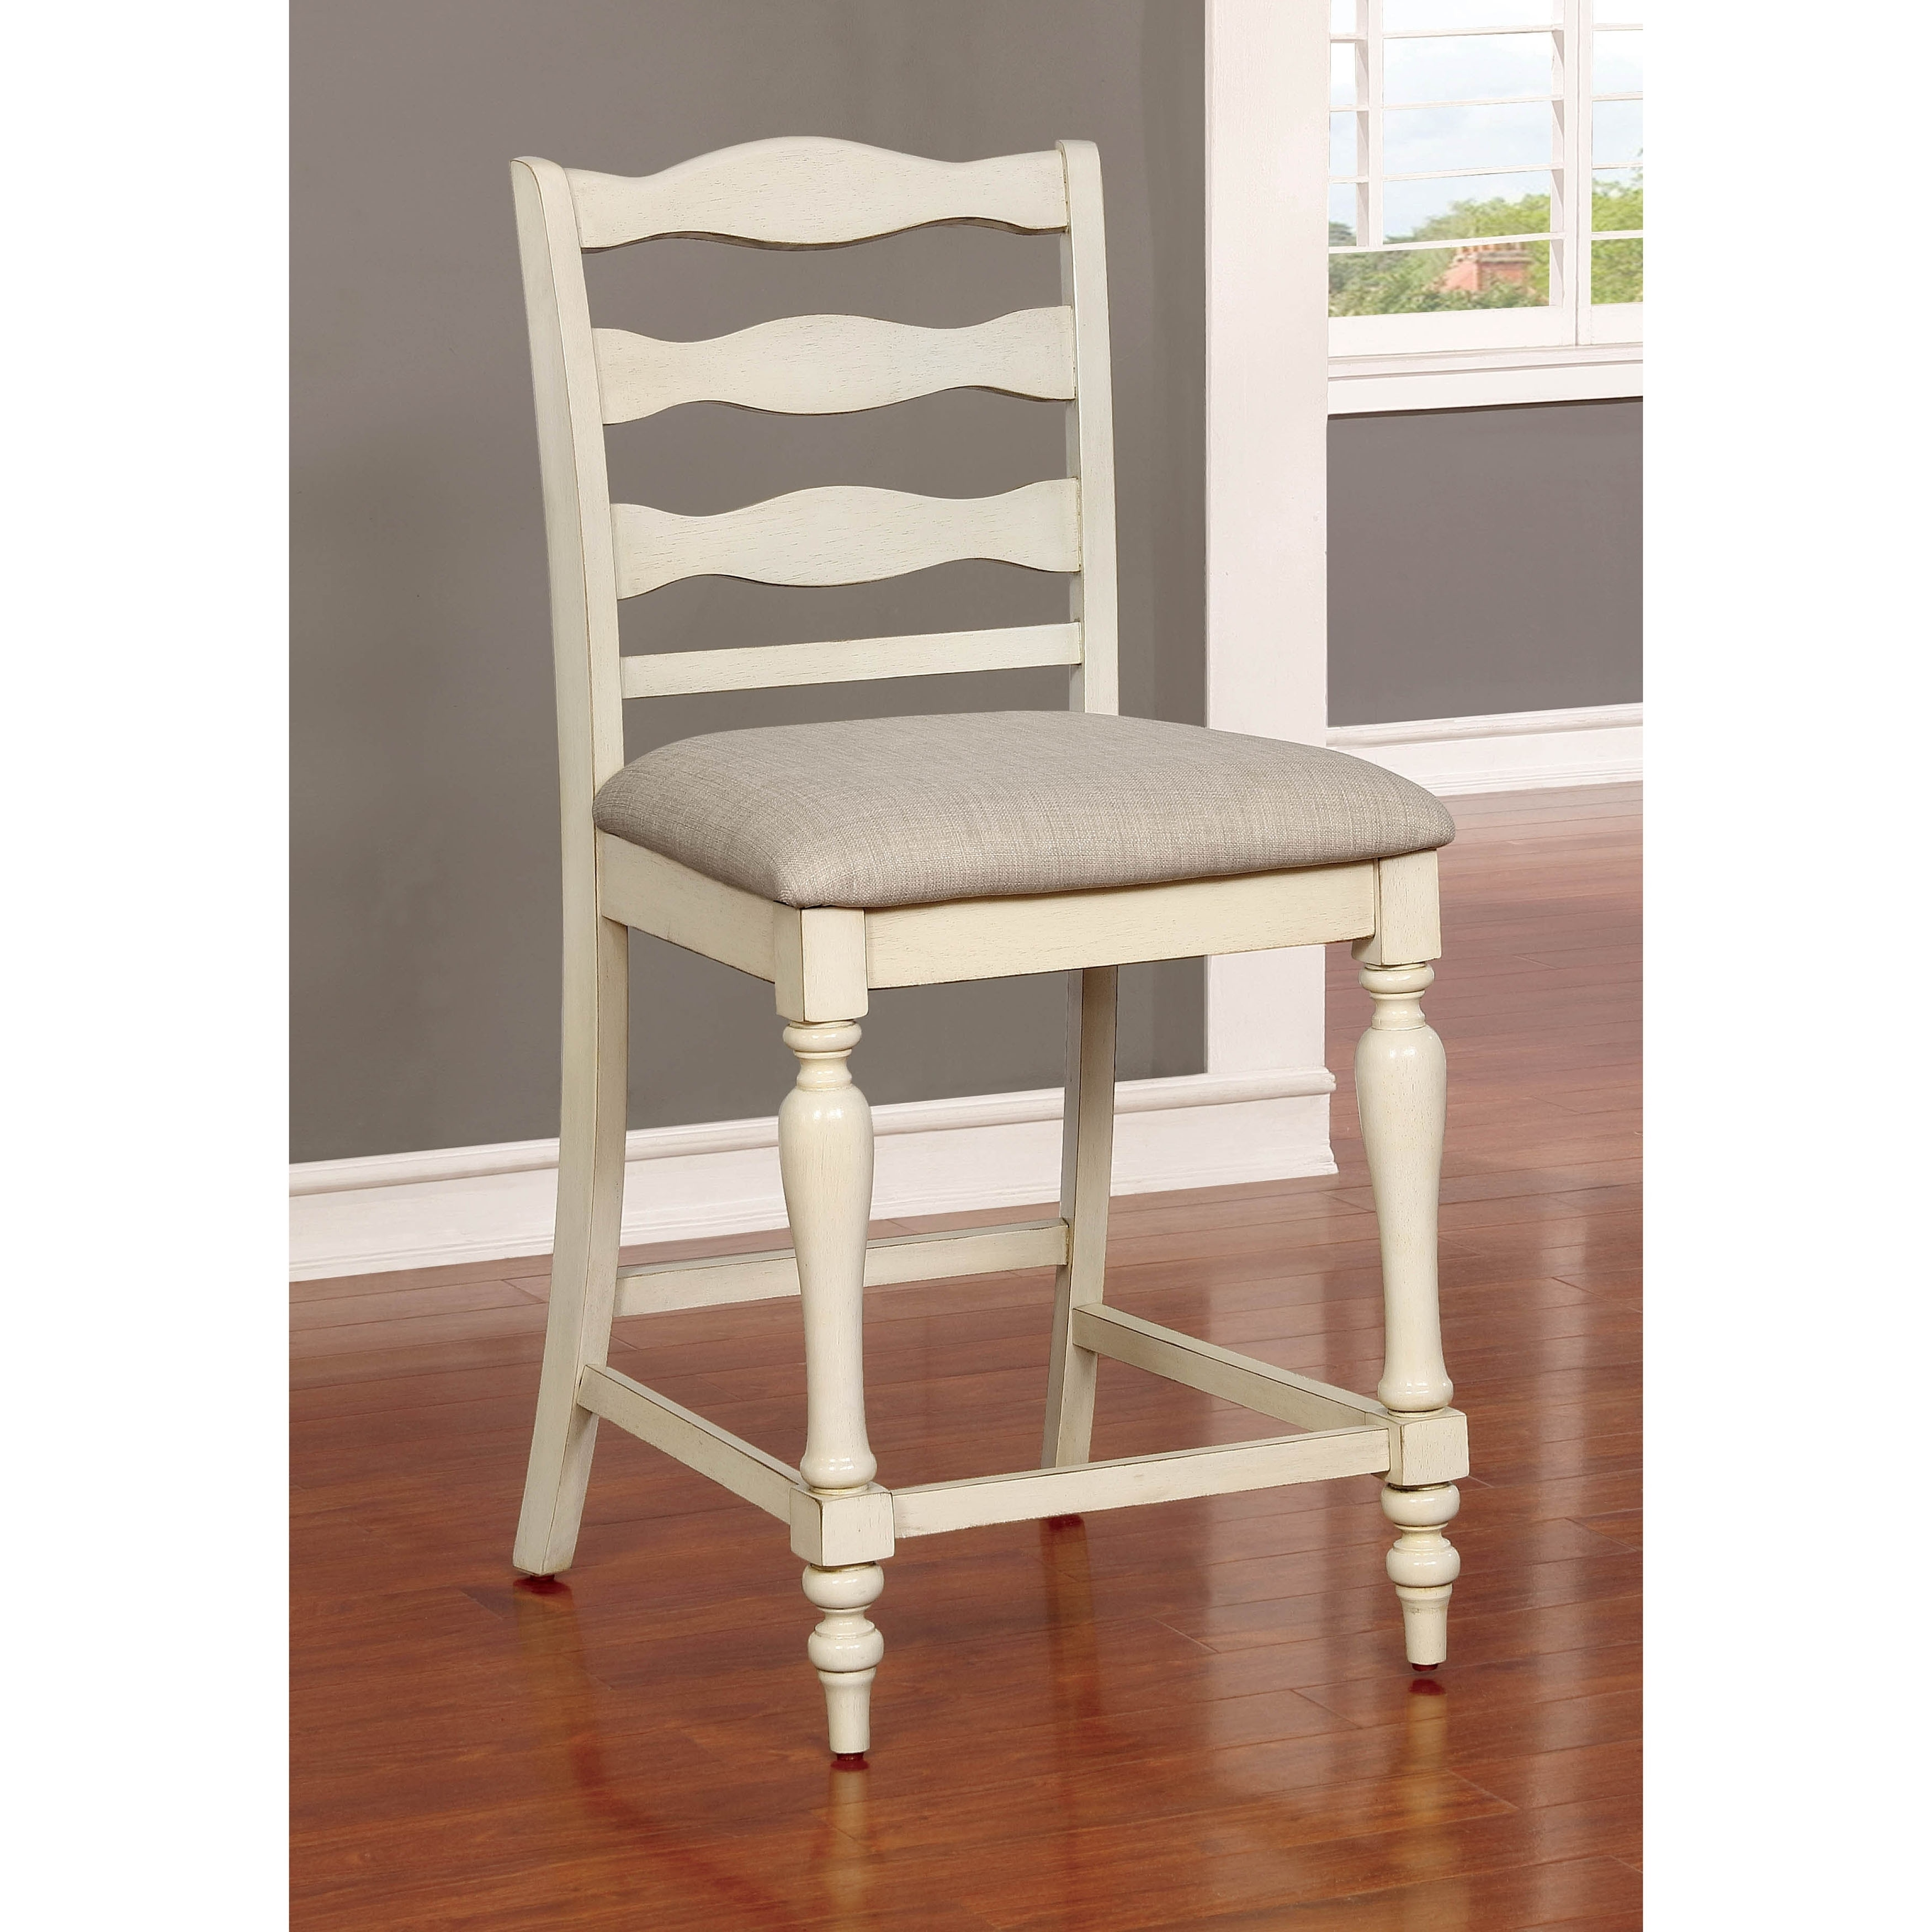 Ames Rustic Antique White Counter Height Chair Set Of 2 By Foa